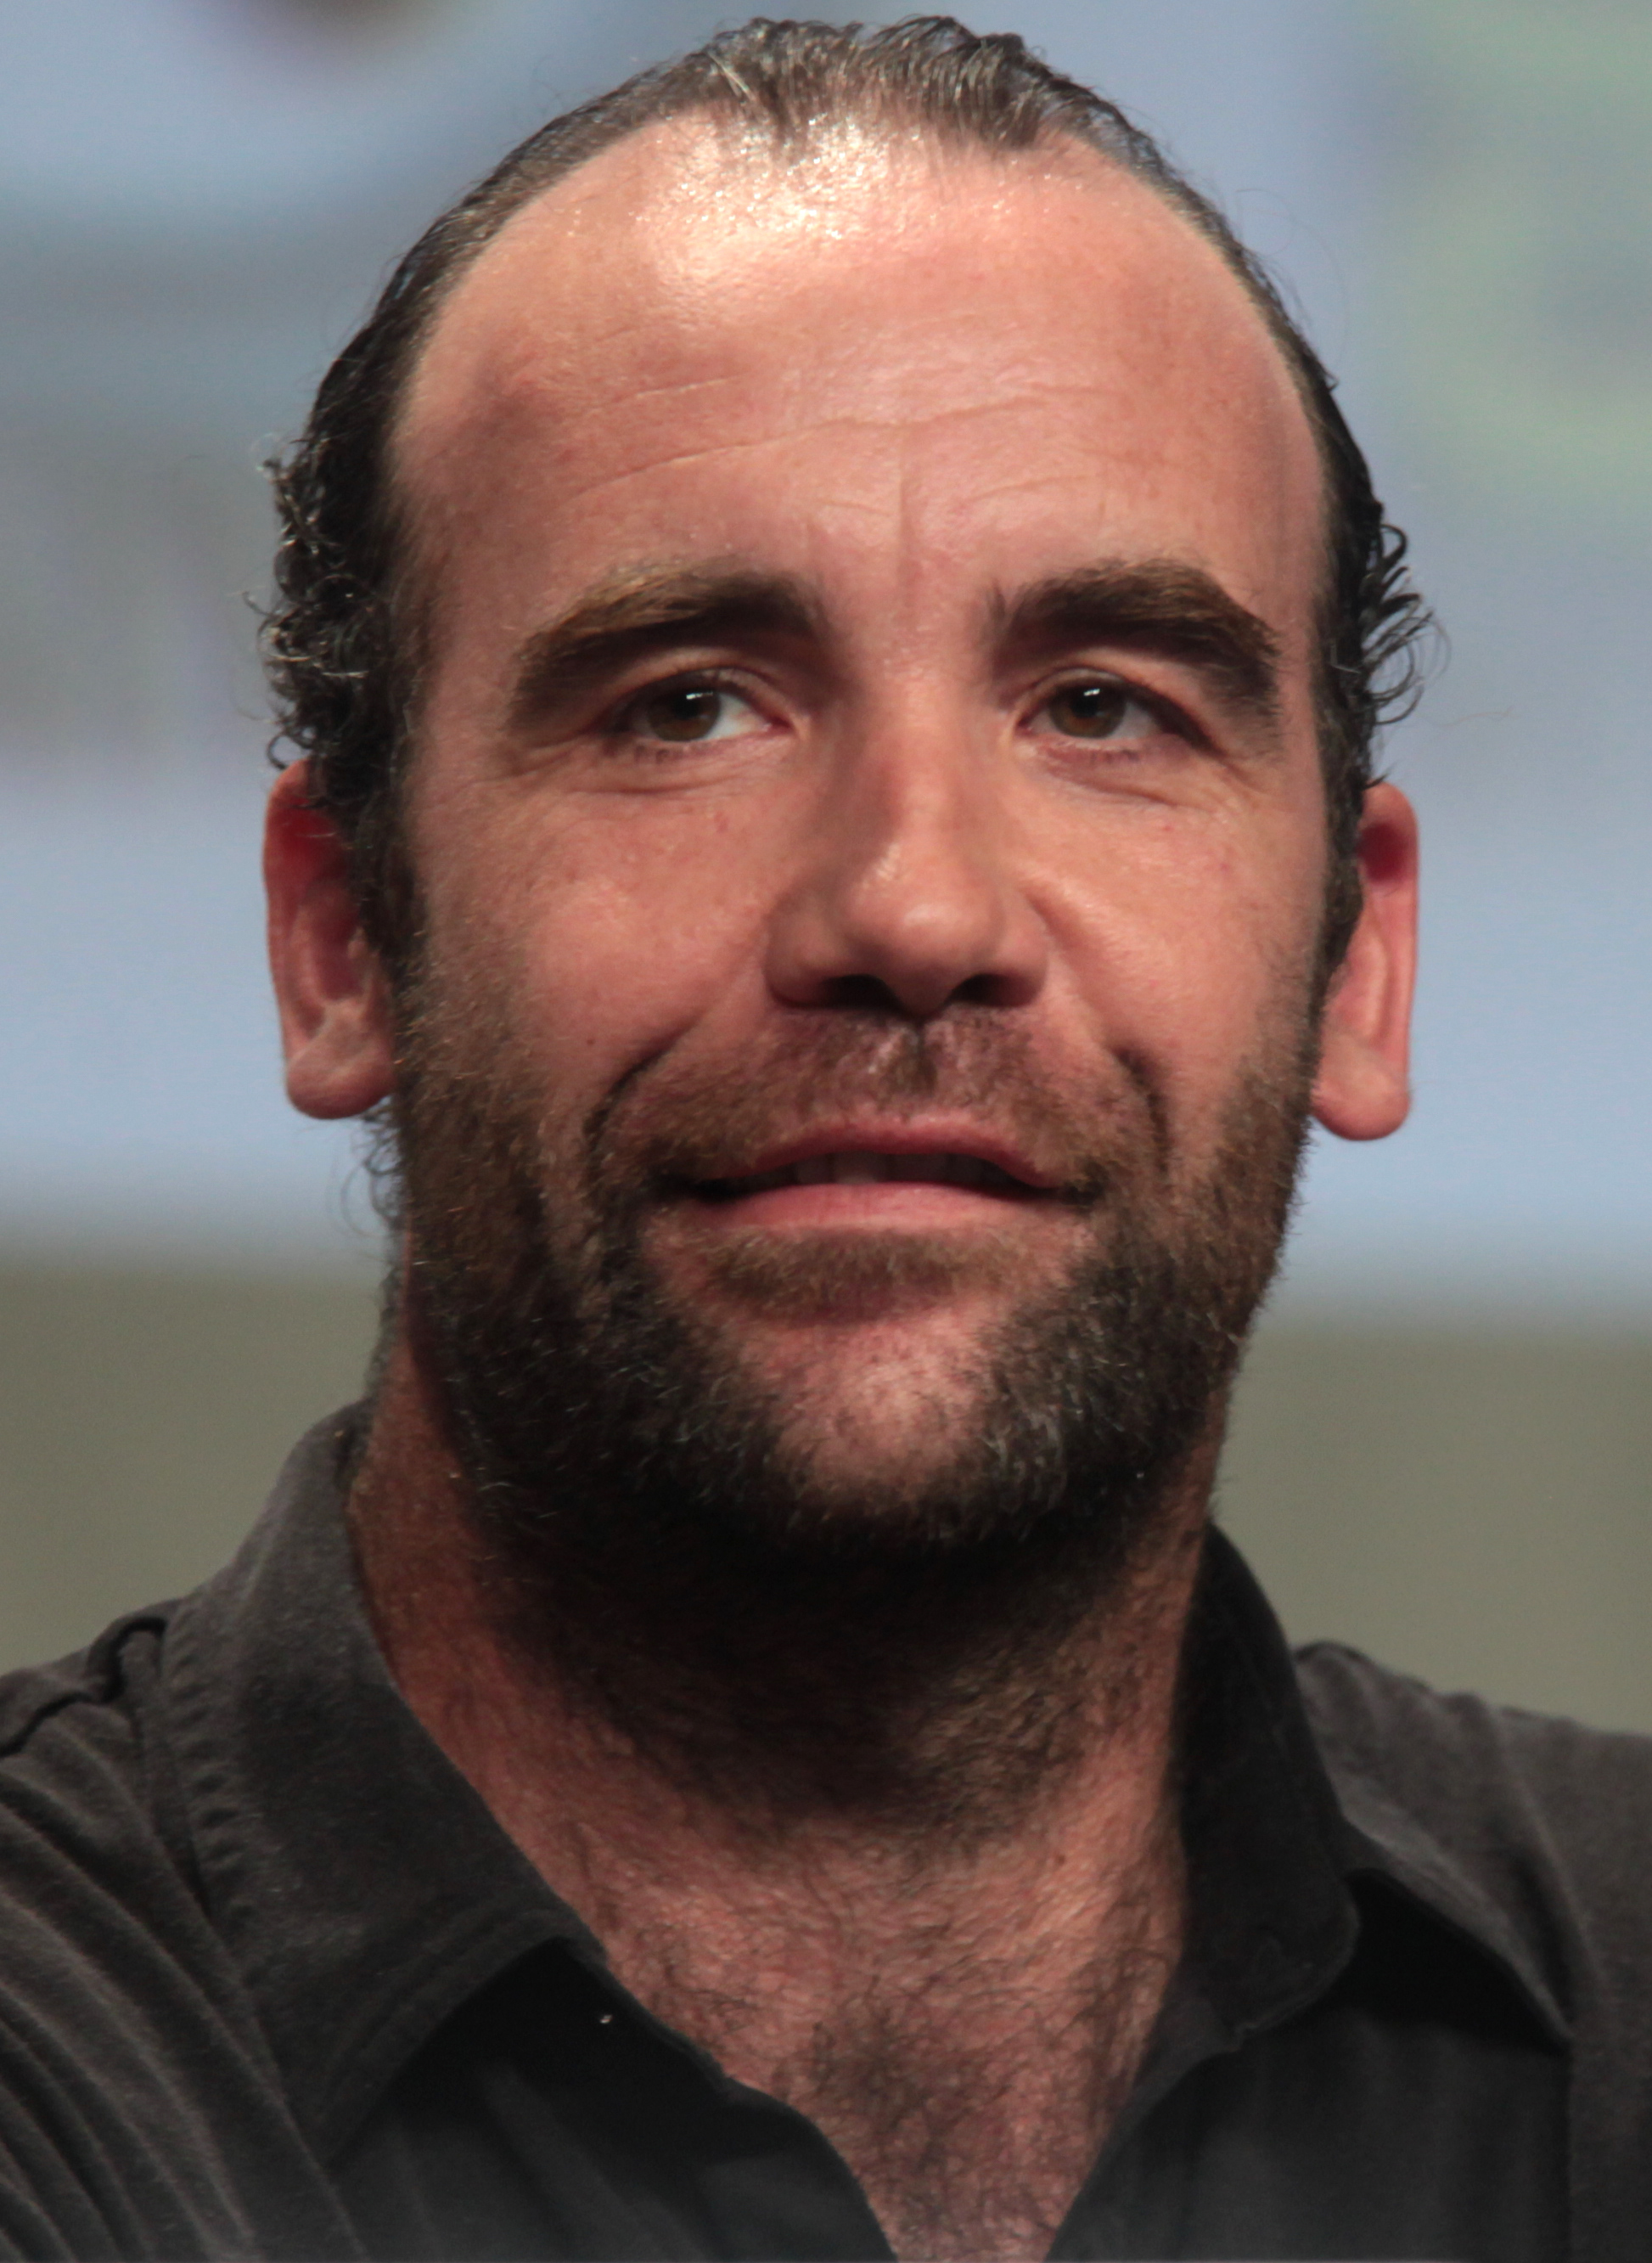 The 49-year old son of father (?) and mother(?), 198 cm tall Rory McCann in 2018 photo